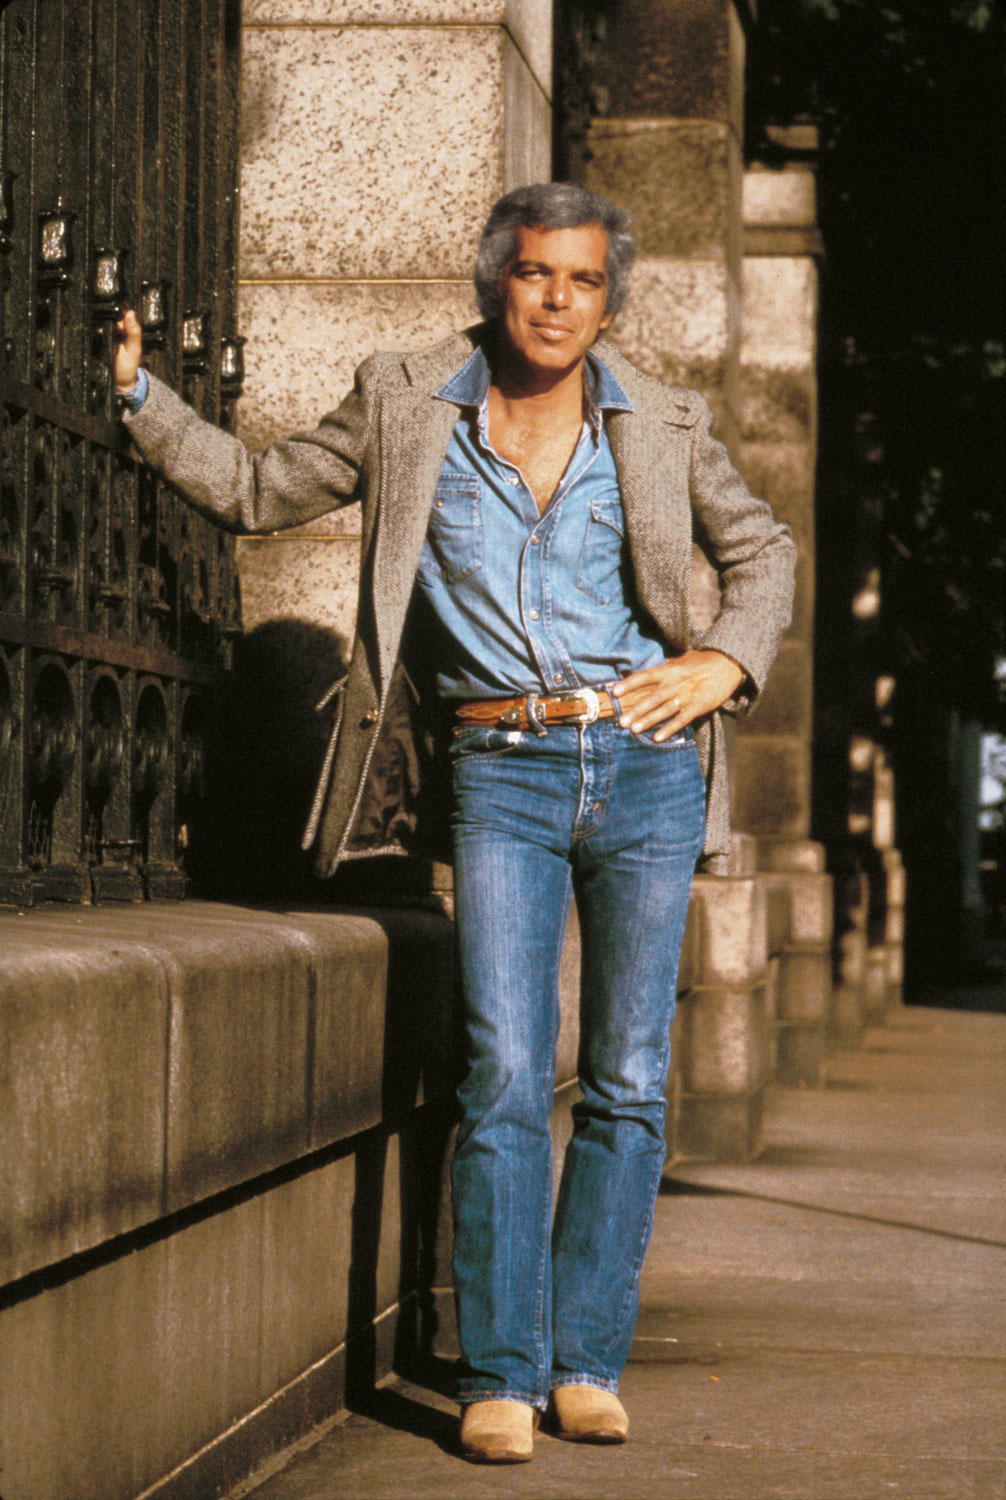 Featured in the photo: Ralph Lauren, 1978, Photo credit: Les Goldberg / Courtesy of Ralph Lauren